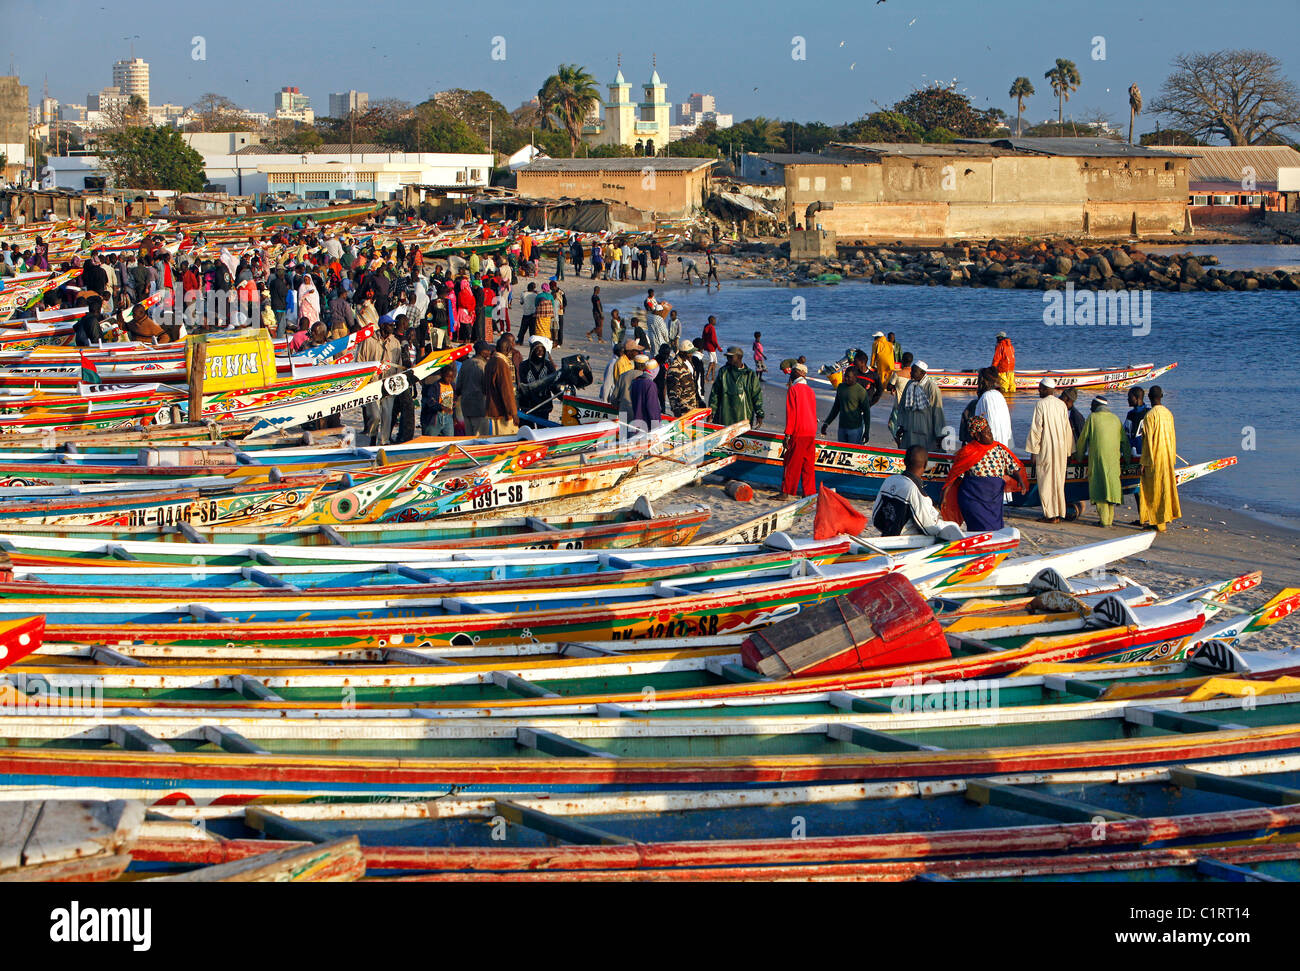 Colorfully painted fishing boats line the beach at the fish market in Dakar, Senegal - Stock Image